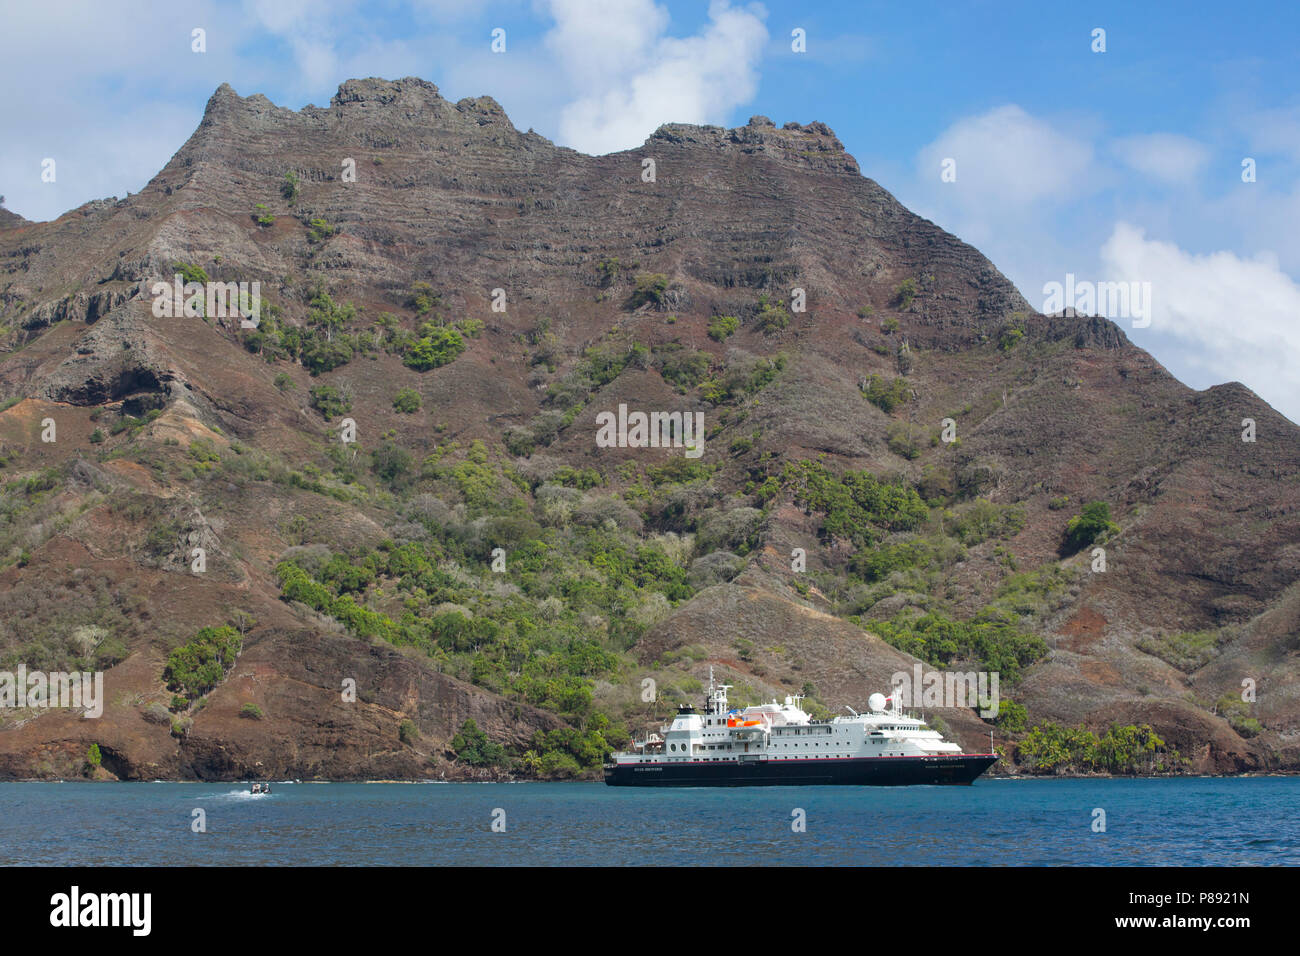 Cruise Ship at Hiva Oa, Marquesas Islands - Stock Image